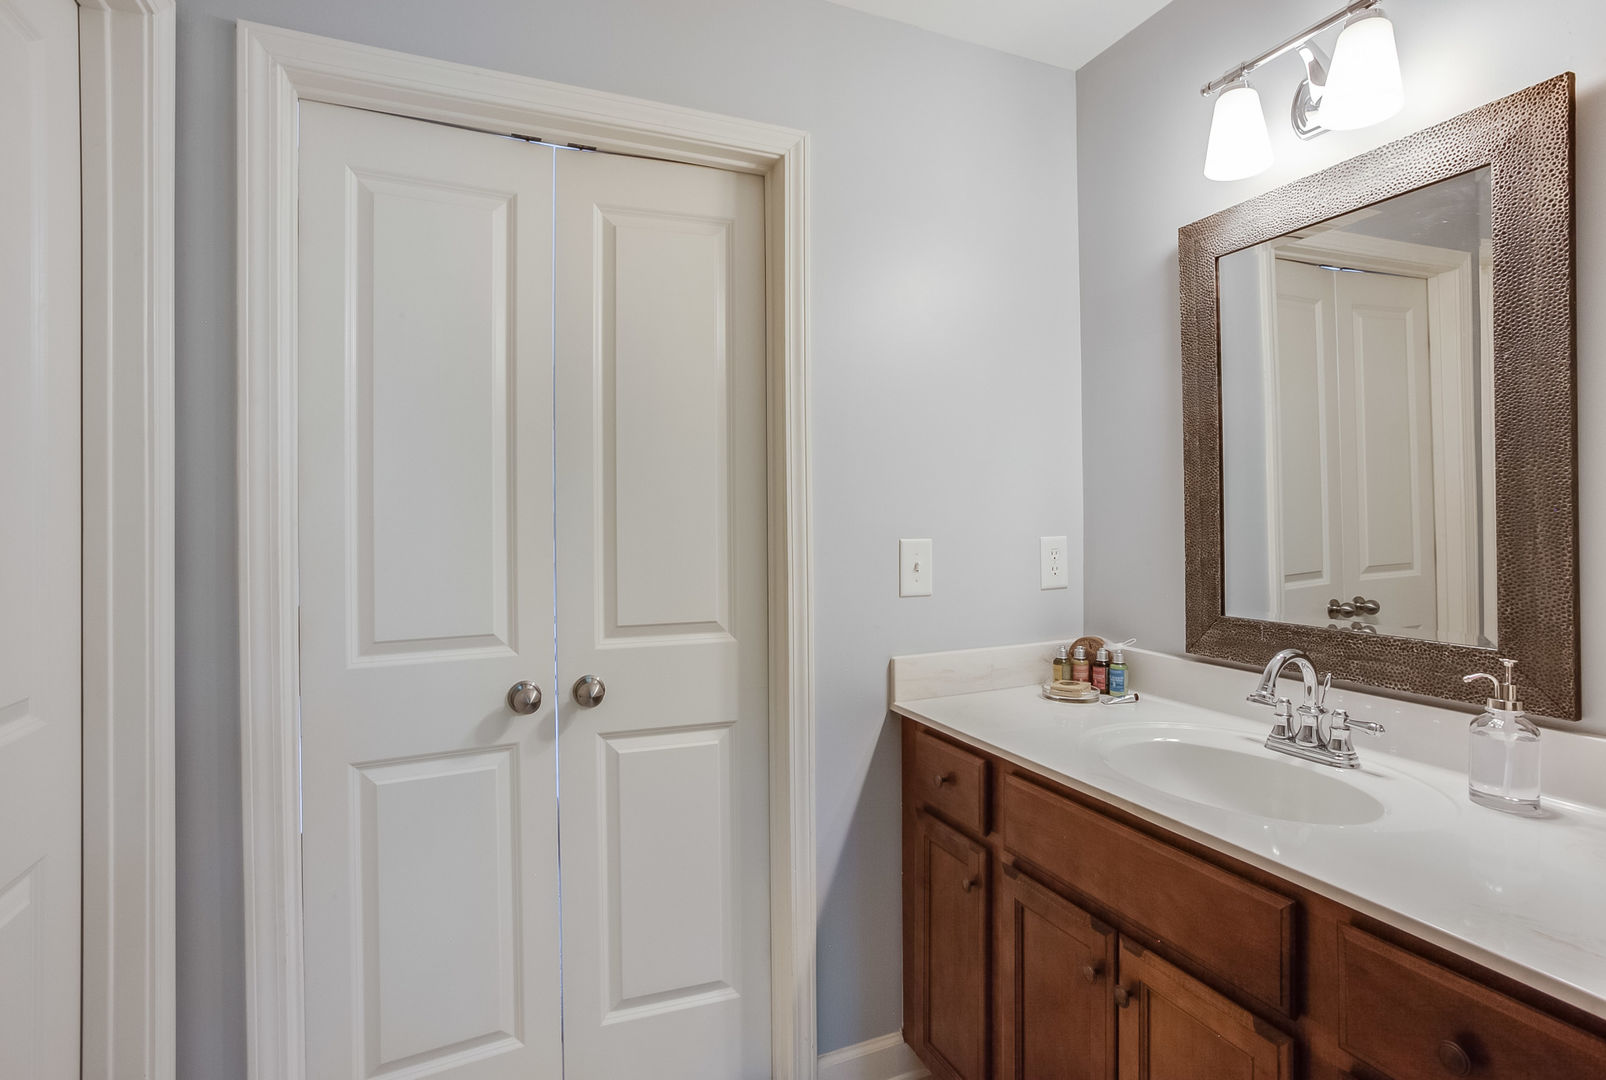 Single Vanity Sink, Mirror, Lamp, and Door.